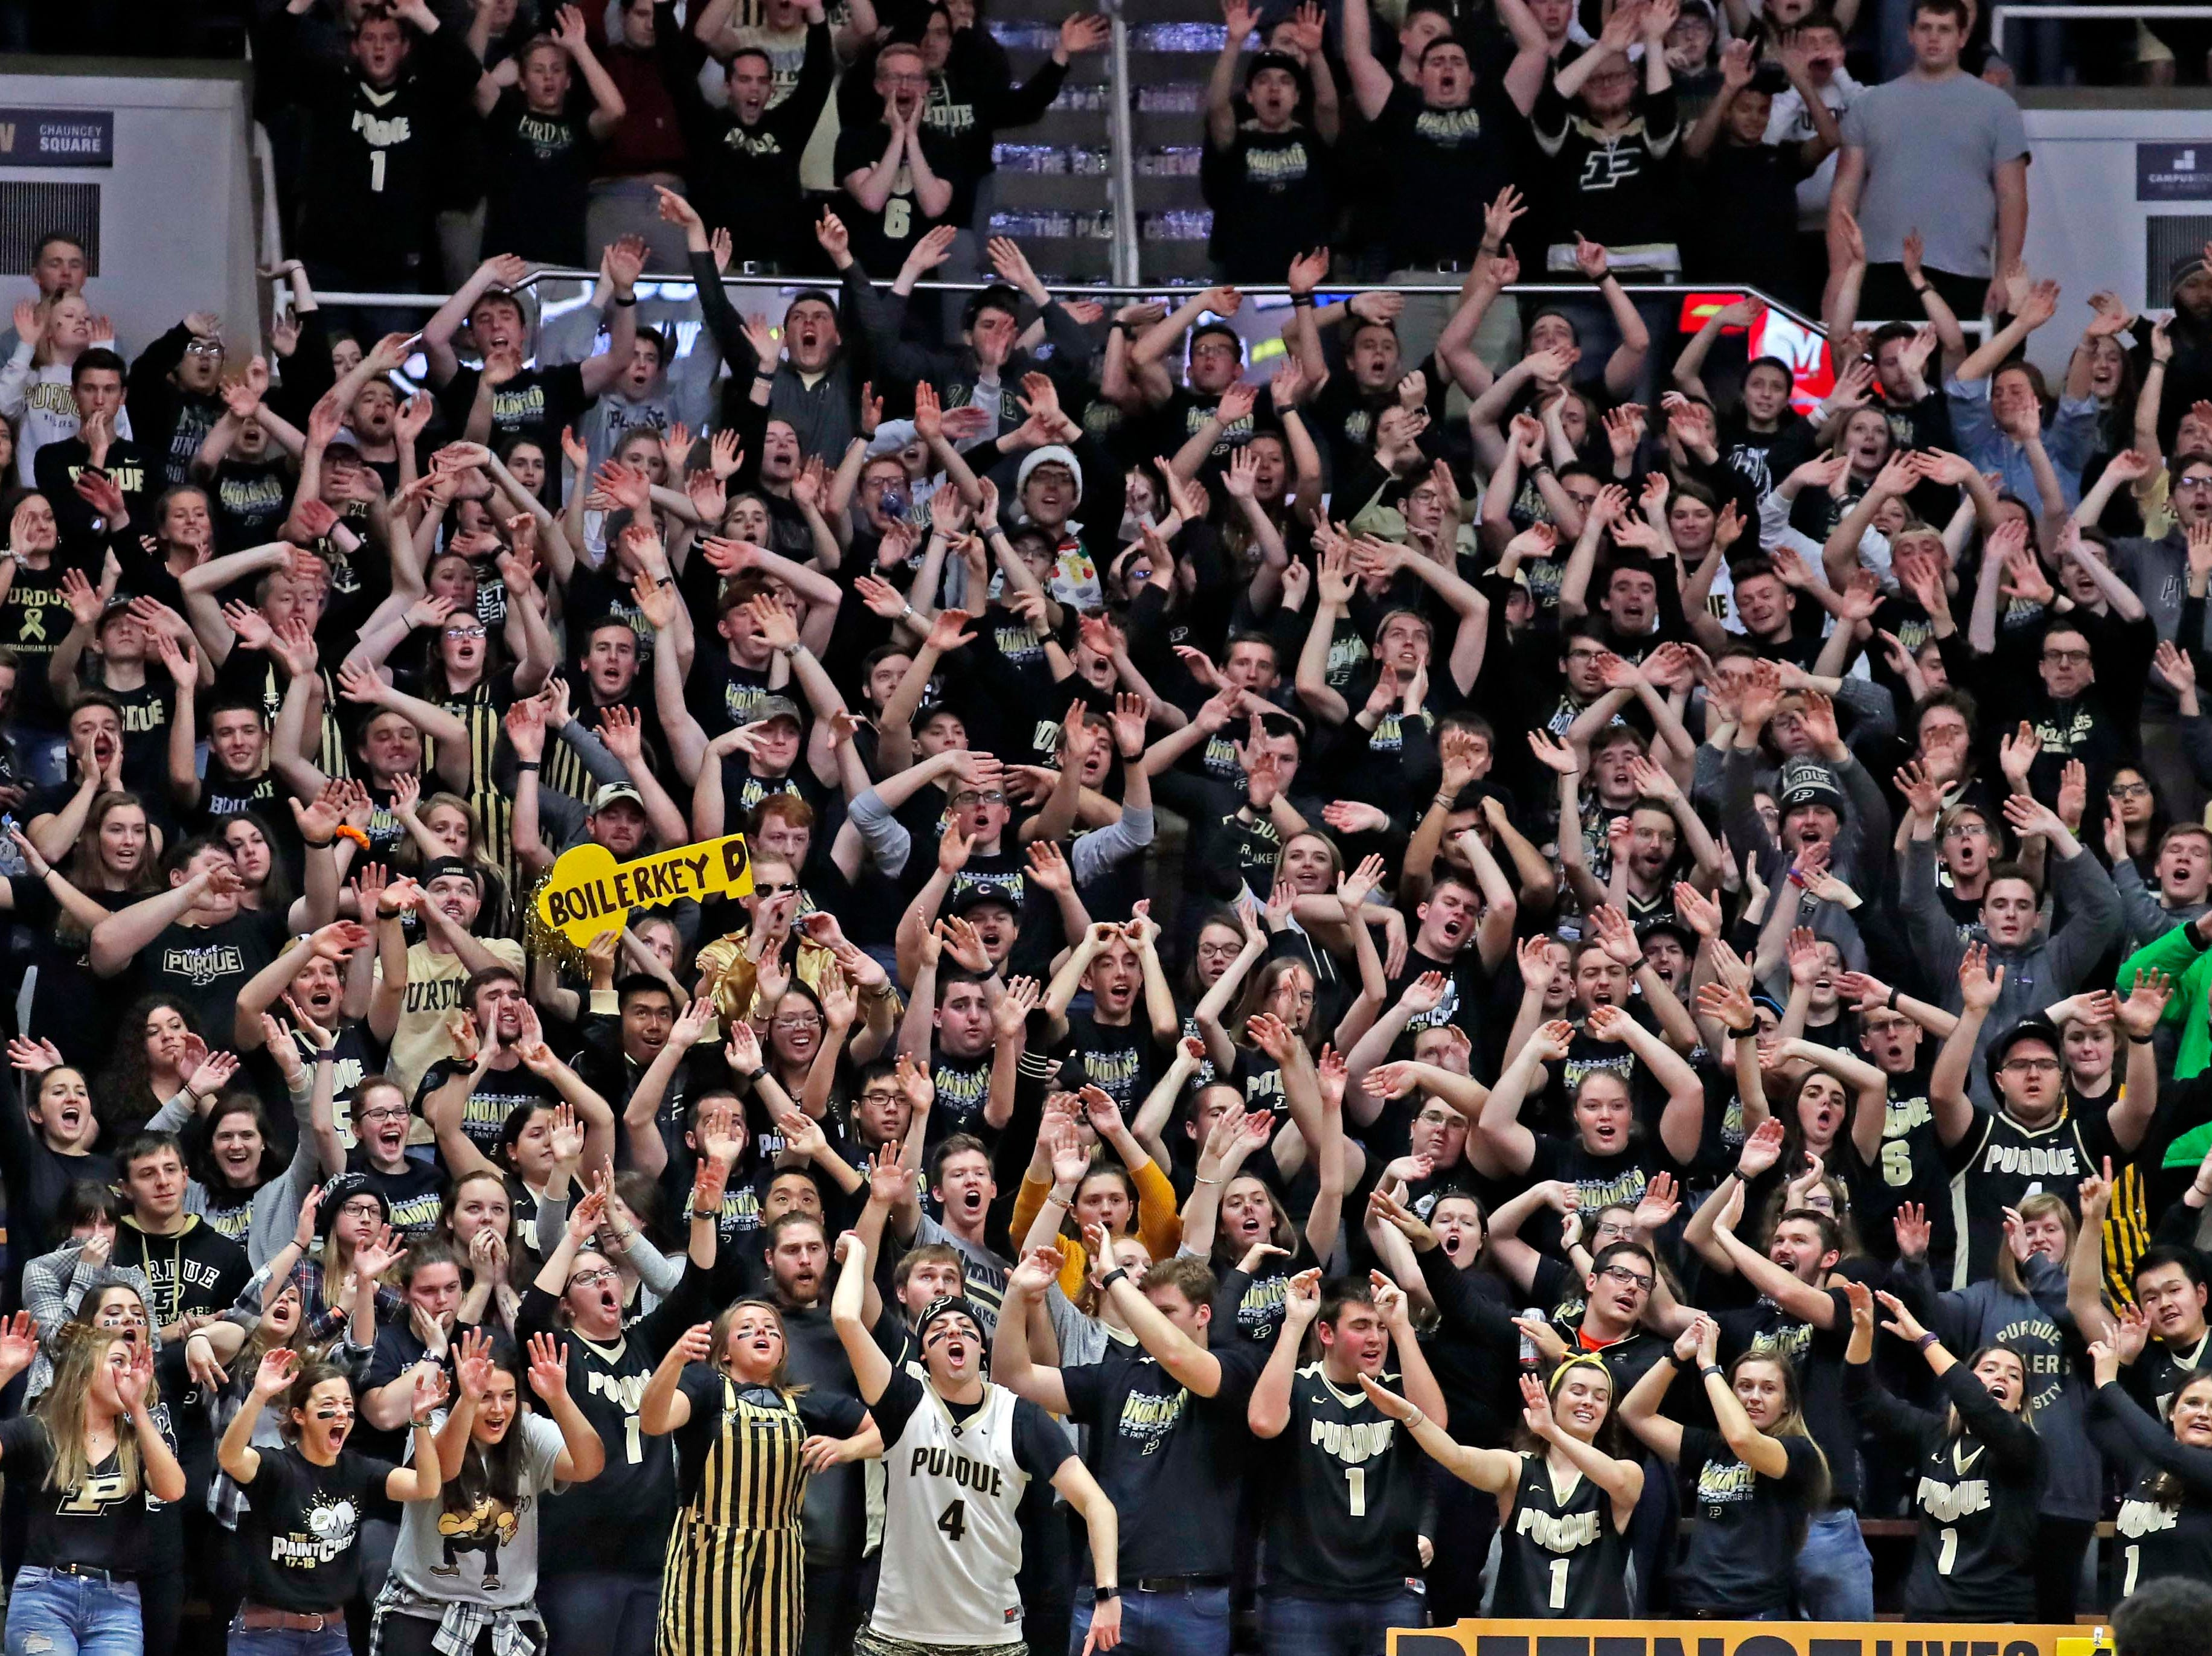 Dec 6, 2018; West Lafayette, IN, USA; Purdue Boilermaker fans cheer in a game against the Maryland Terrapins during the second half at Mackey Arena. Mandatory Credit: Brian Spurlock-USA TODAY Sports